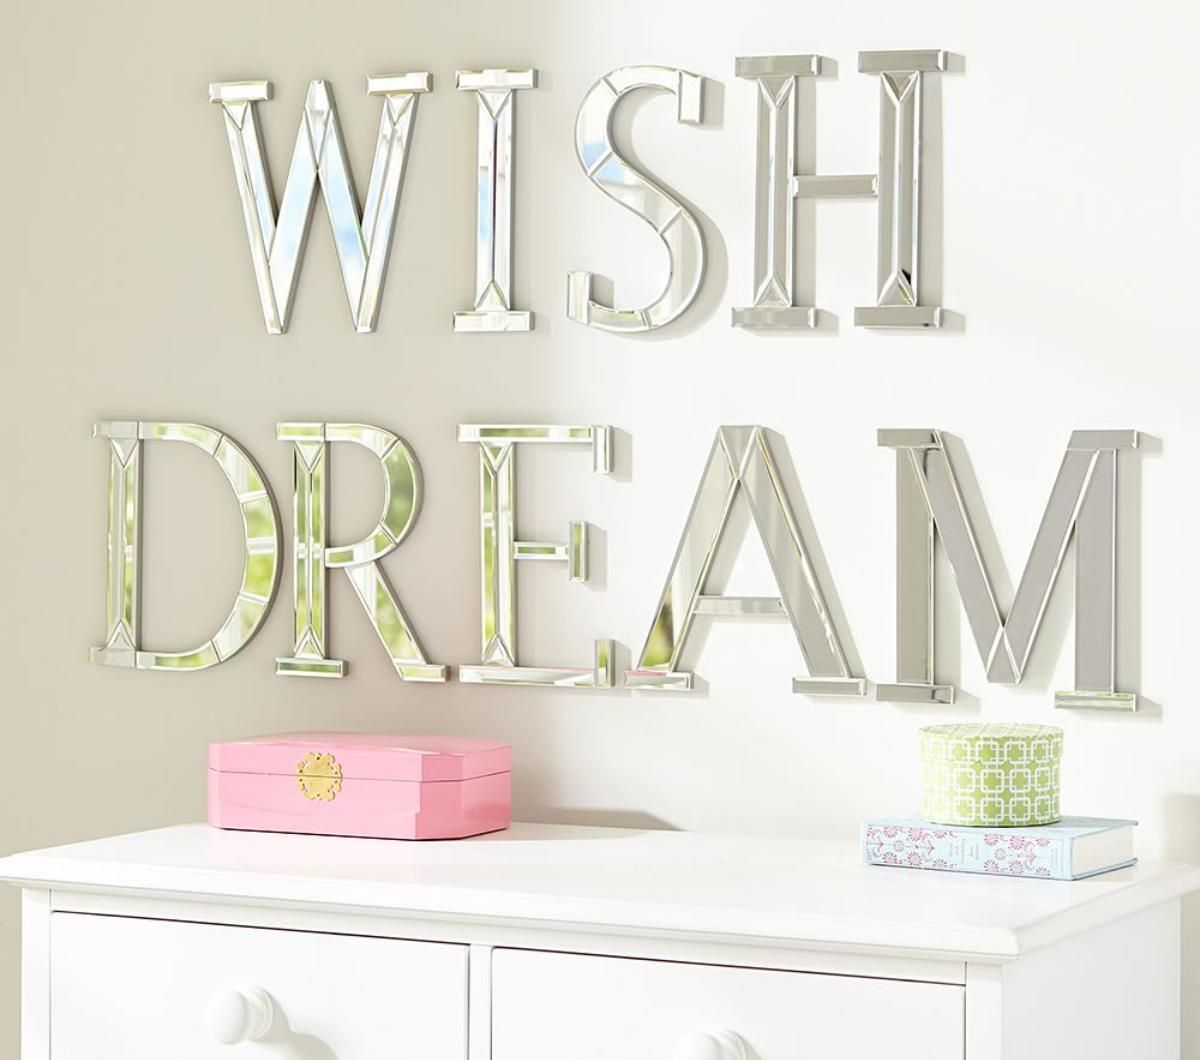 Mirrored wall letters gallery home wall decoration ideas mirrored wall letters nursery pinterest nursery mirrored wall letters amipublicfo gallery amipublicfo Images